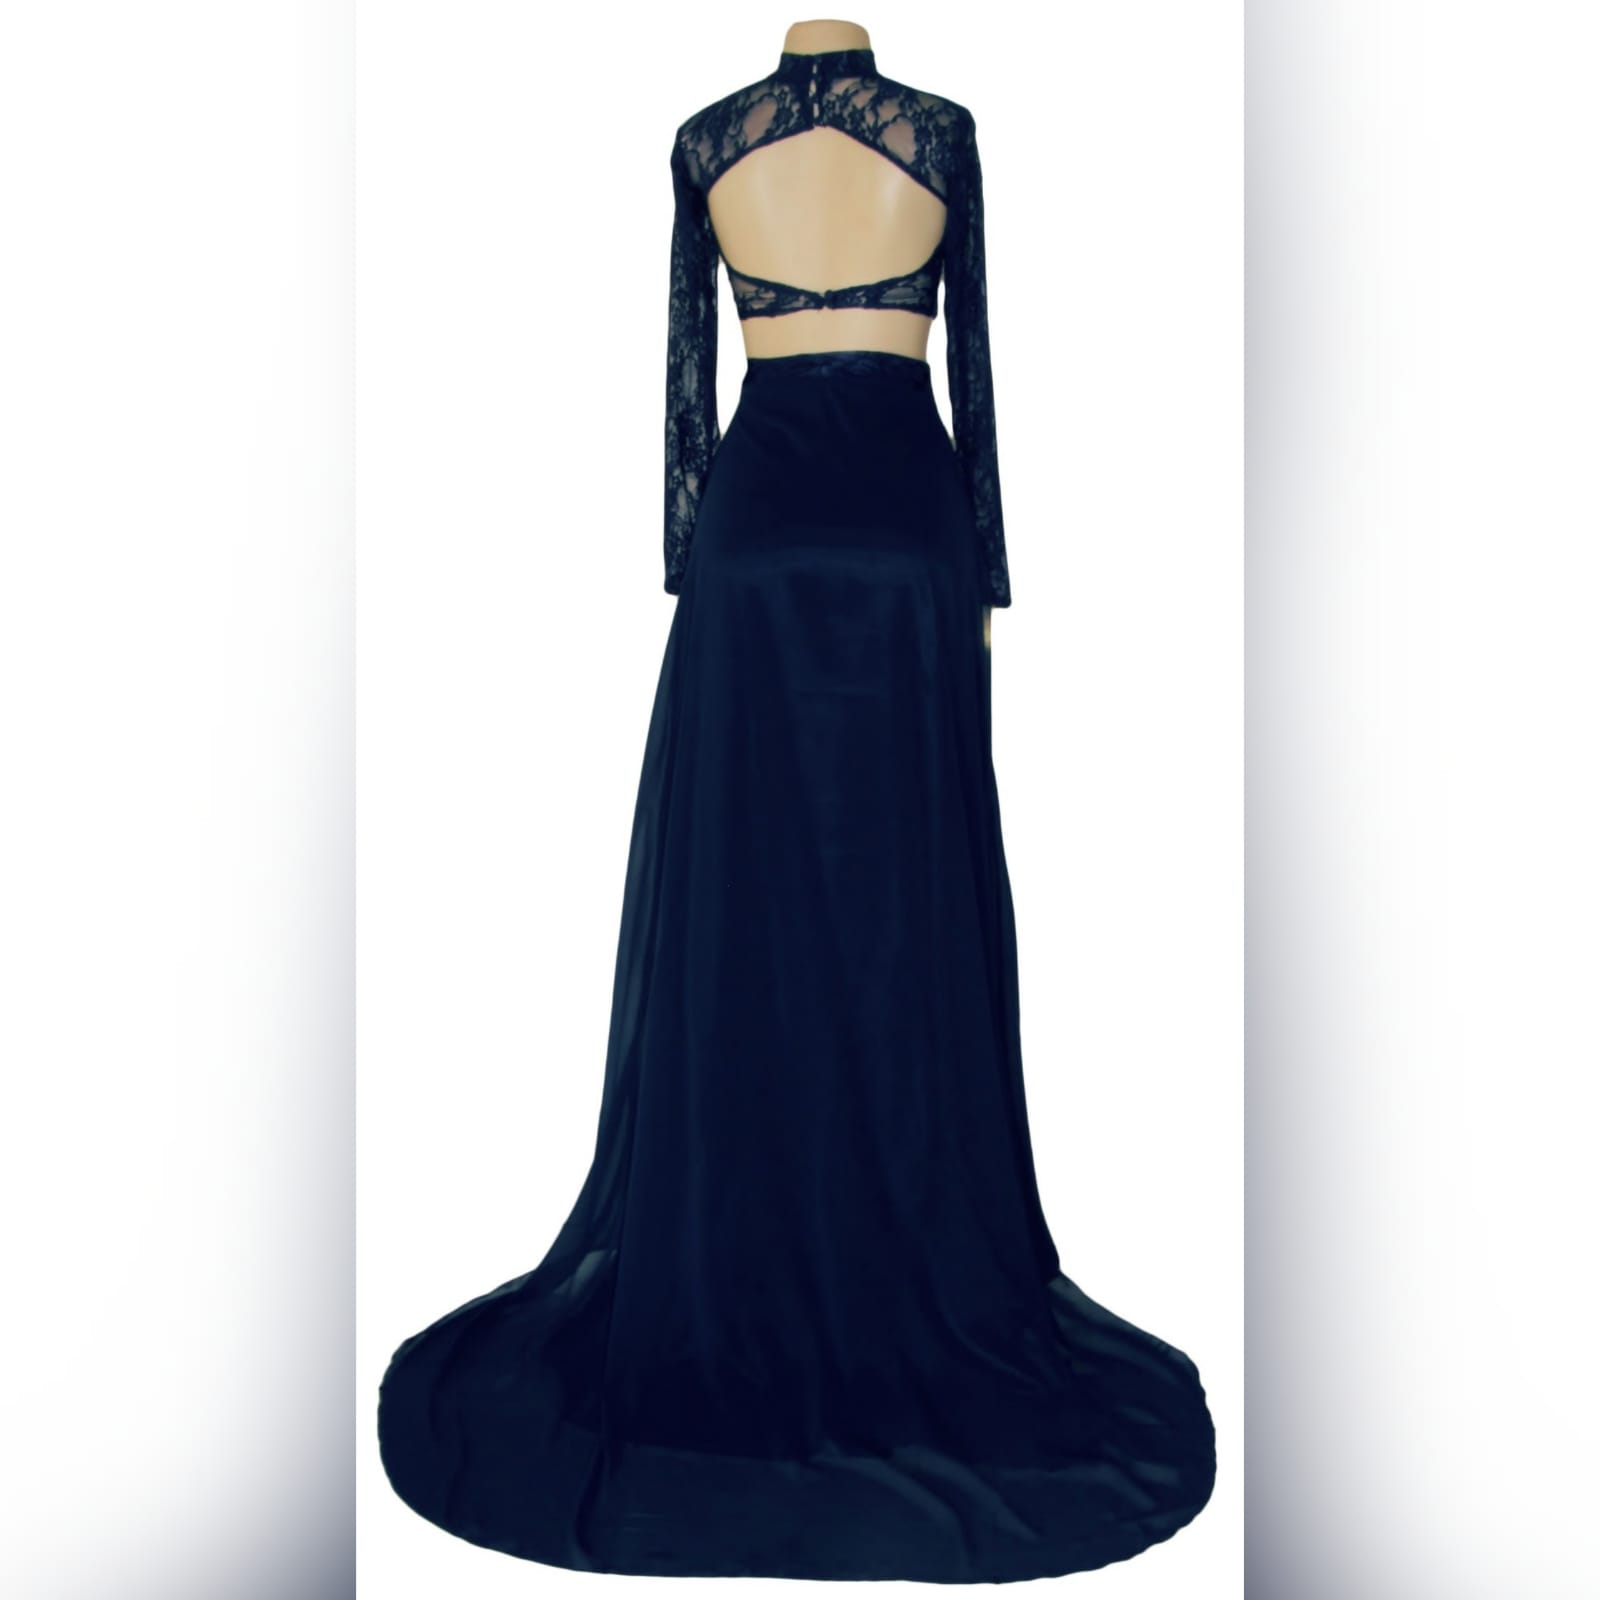 Navy blue 2 piece lace top matric dance dress 4 navy blue 2 piece lace top matric dance dress. Top with sheer long lace sleeves and open back flowy skirt with high slit and a train.